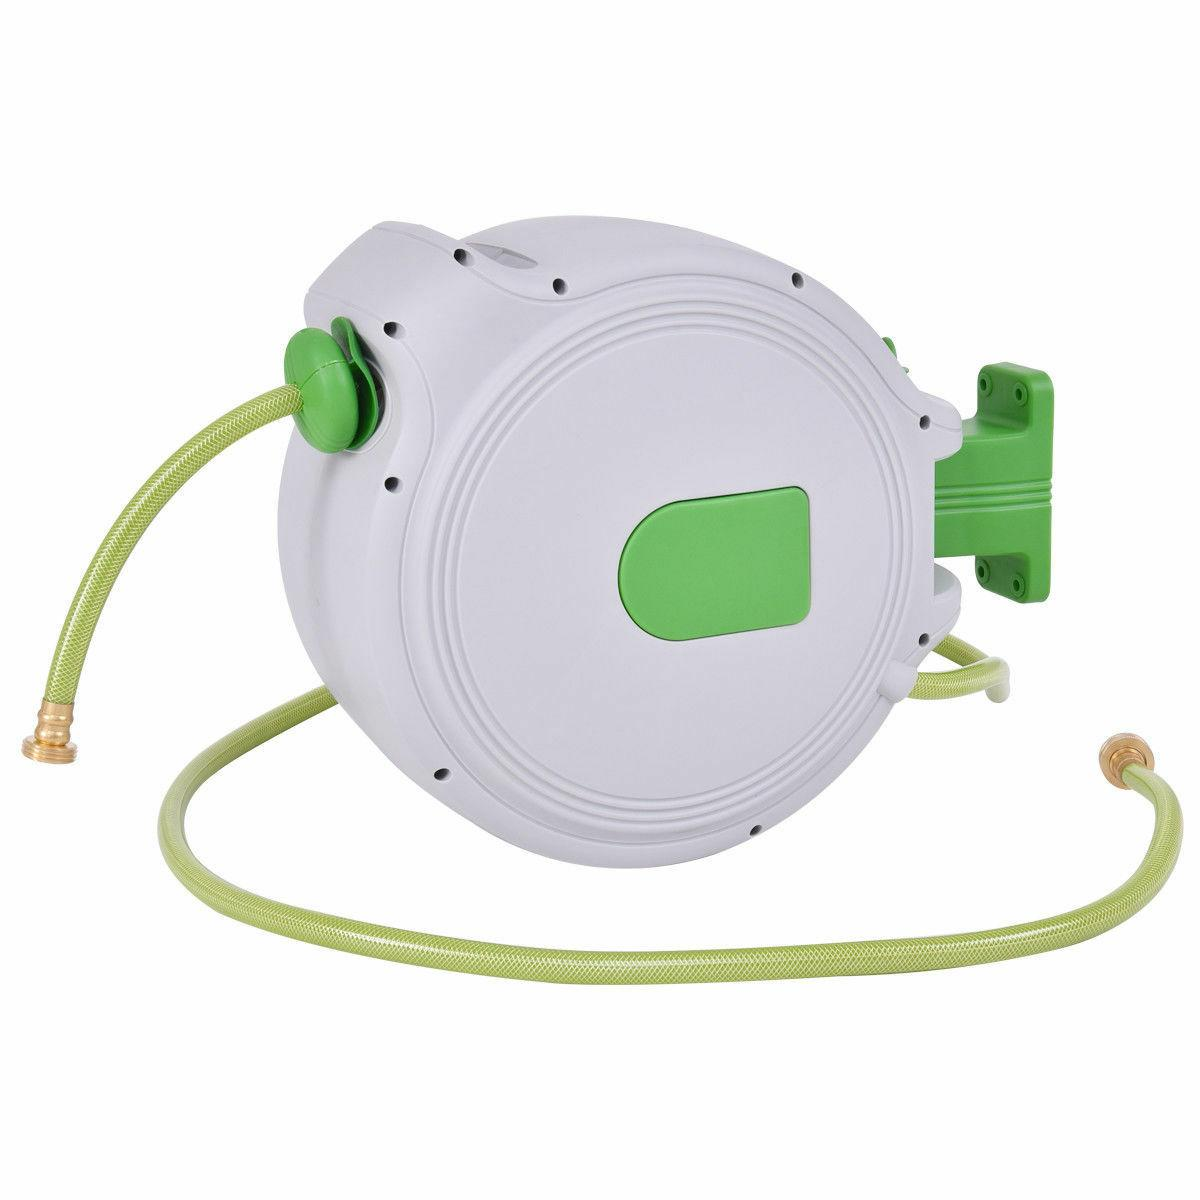 65' Retractable Hose Reel Auto Wall Mounted